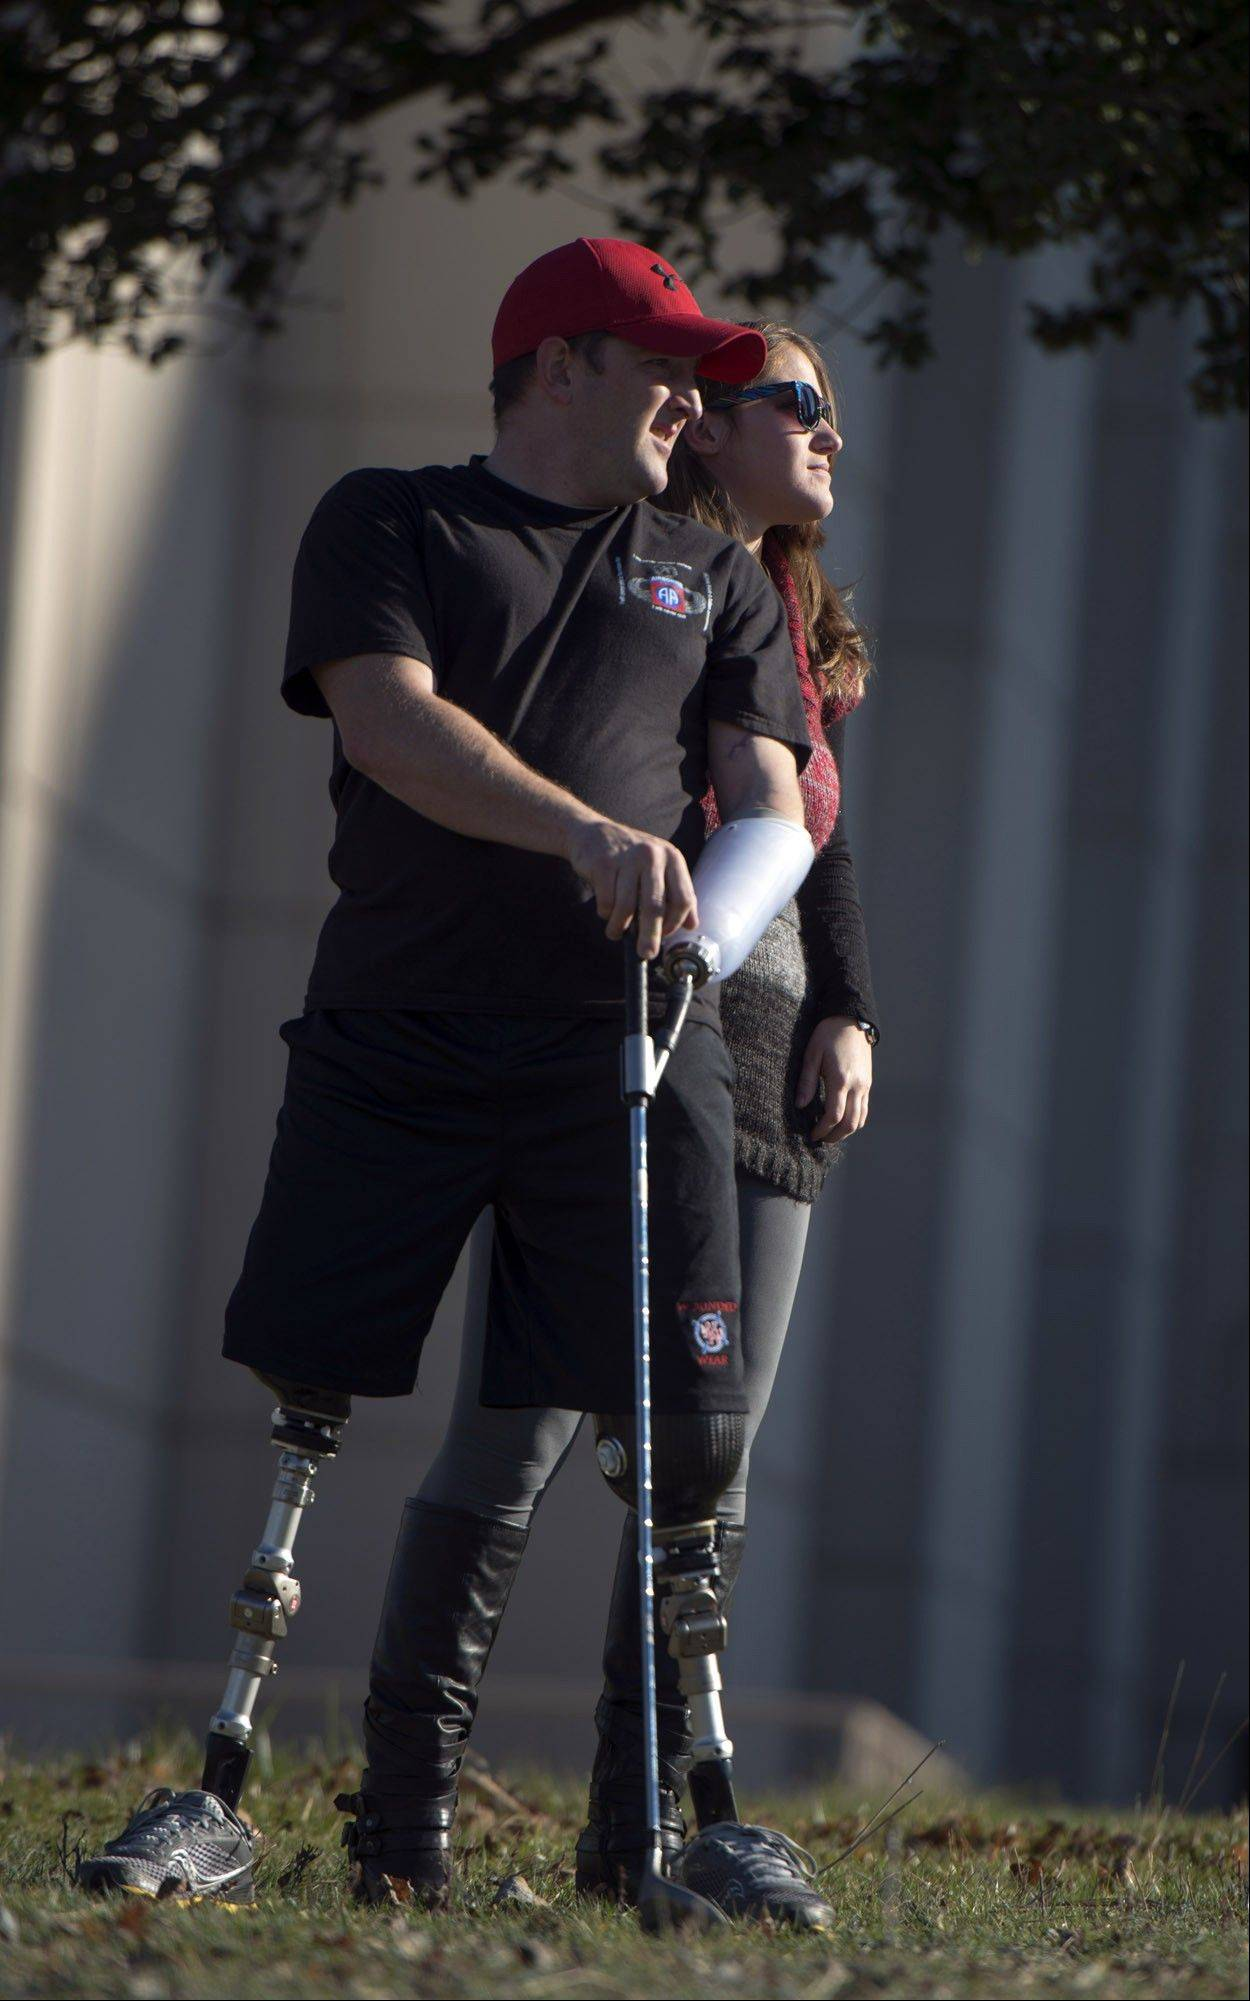 Sergeant Monte Bernardo, left, and his girlfriend Amanda Simmons look to see how far a golf ball traveled across a field at the Walter Reed National Military Medical Center in Bethesda, Md.